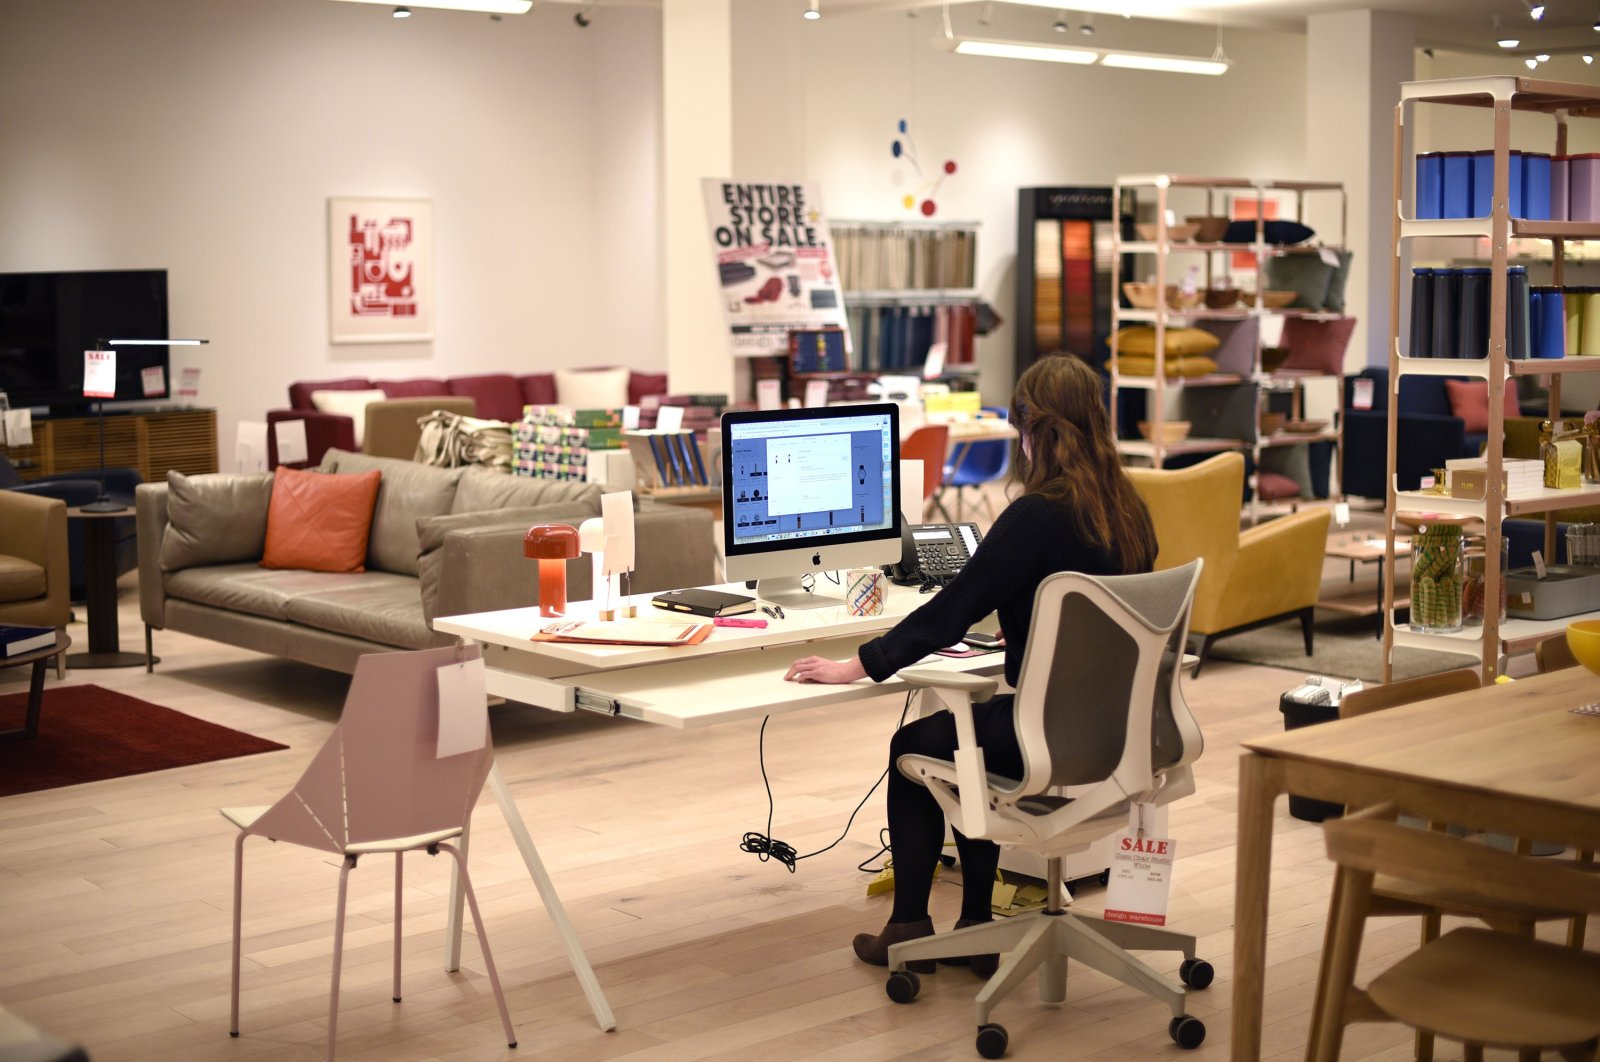 An employee works at her computer in a home and office furniture and accessory store in Santa Fe, New Mexico, U.S., Jan. 14, 2020. (Getty Images)